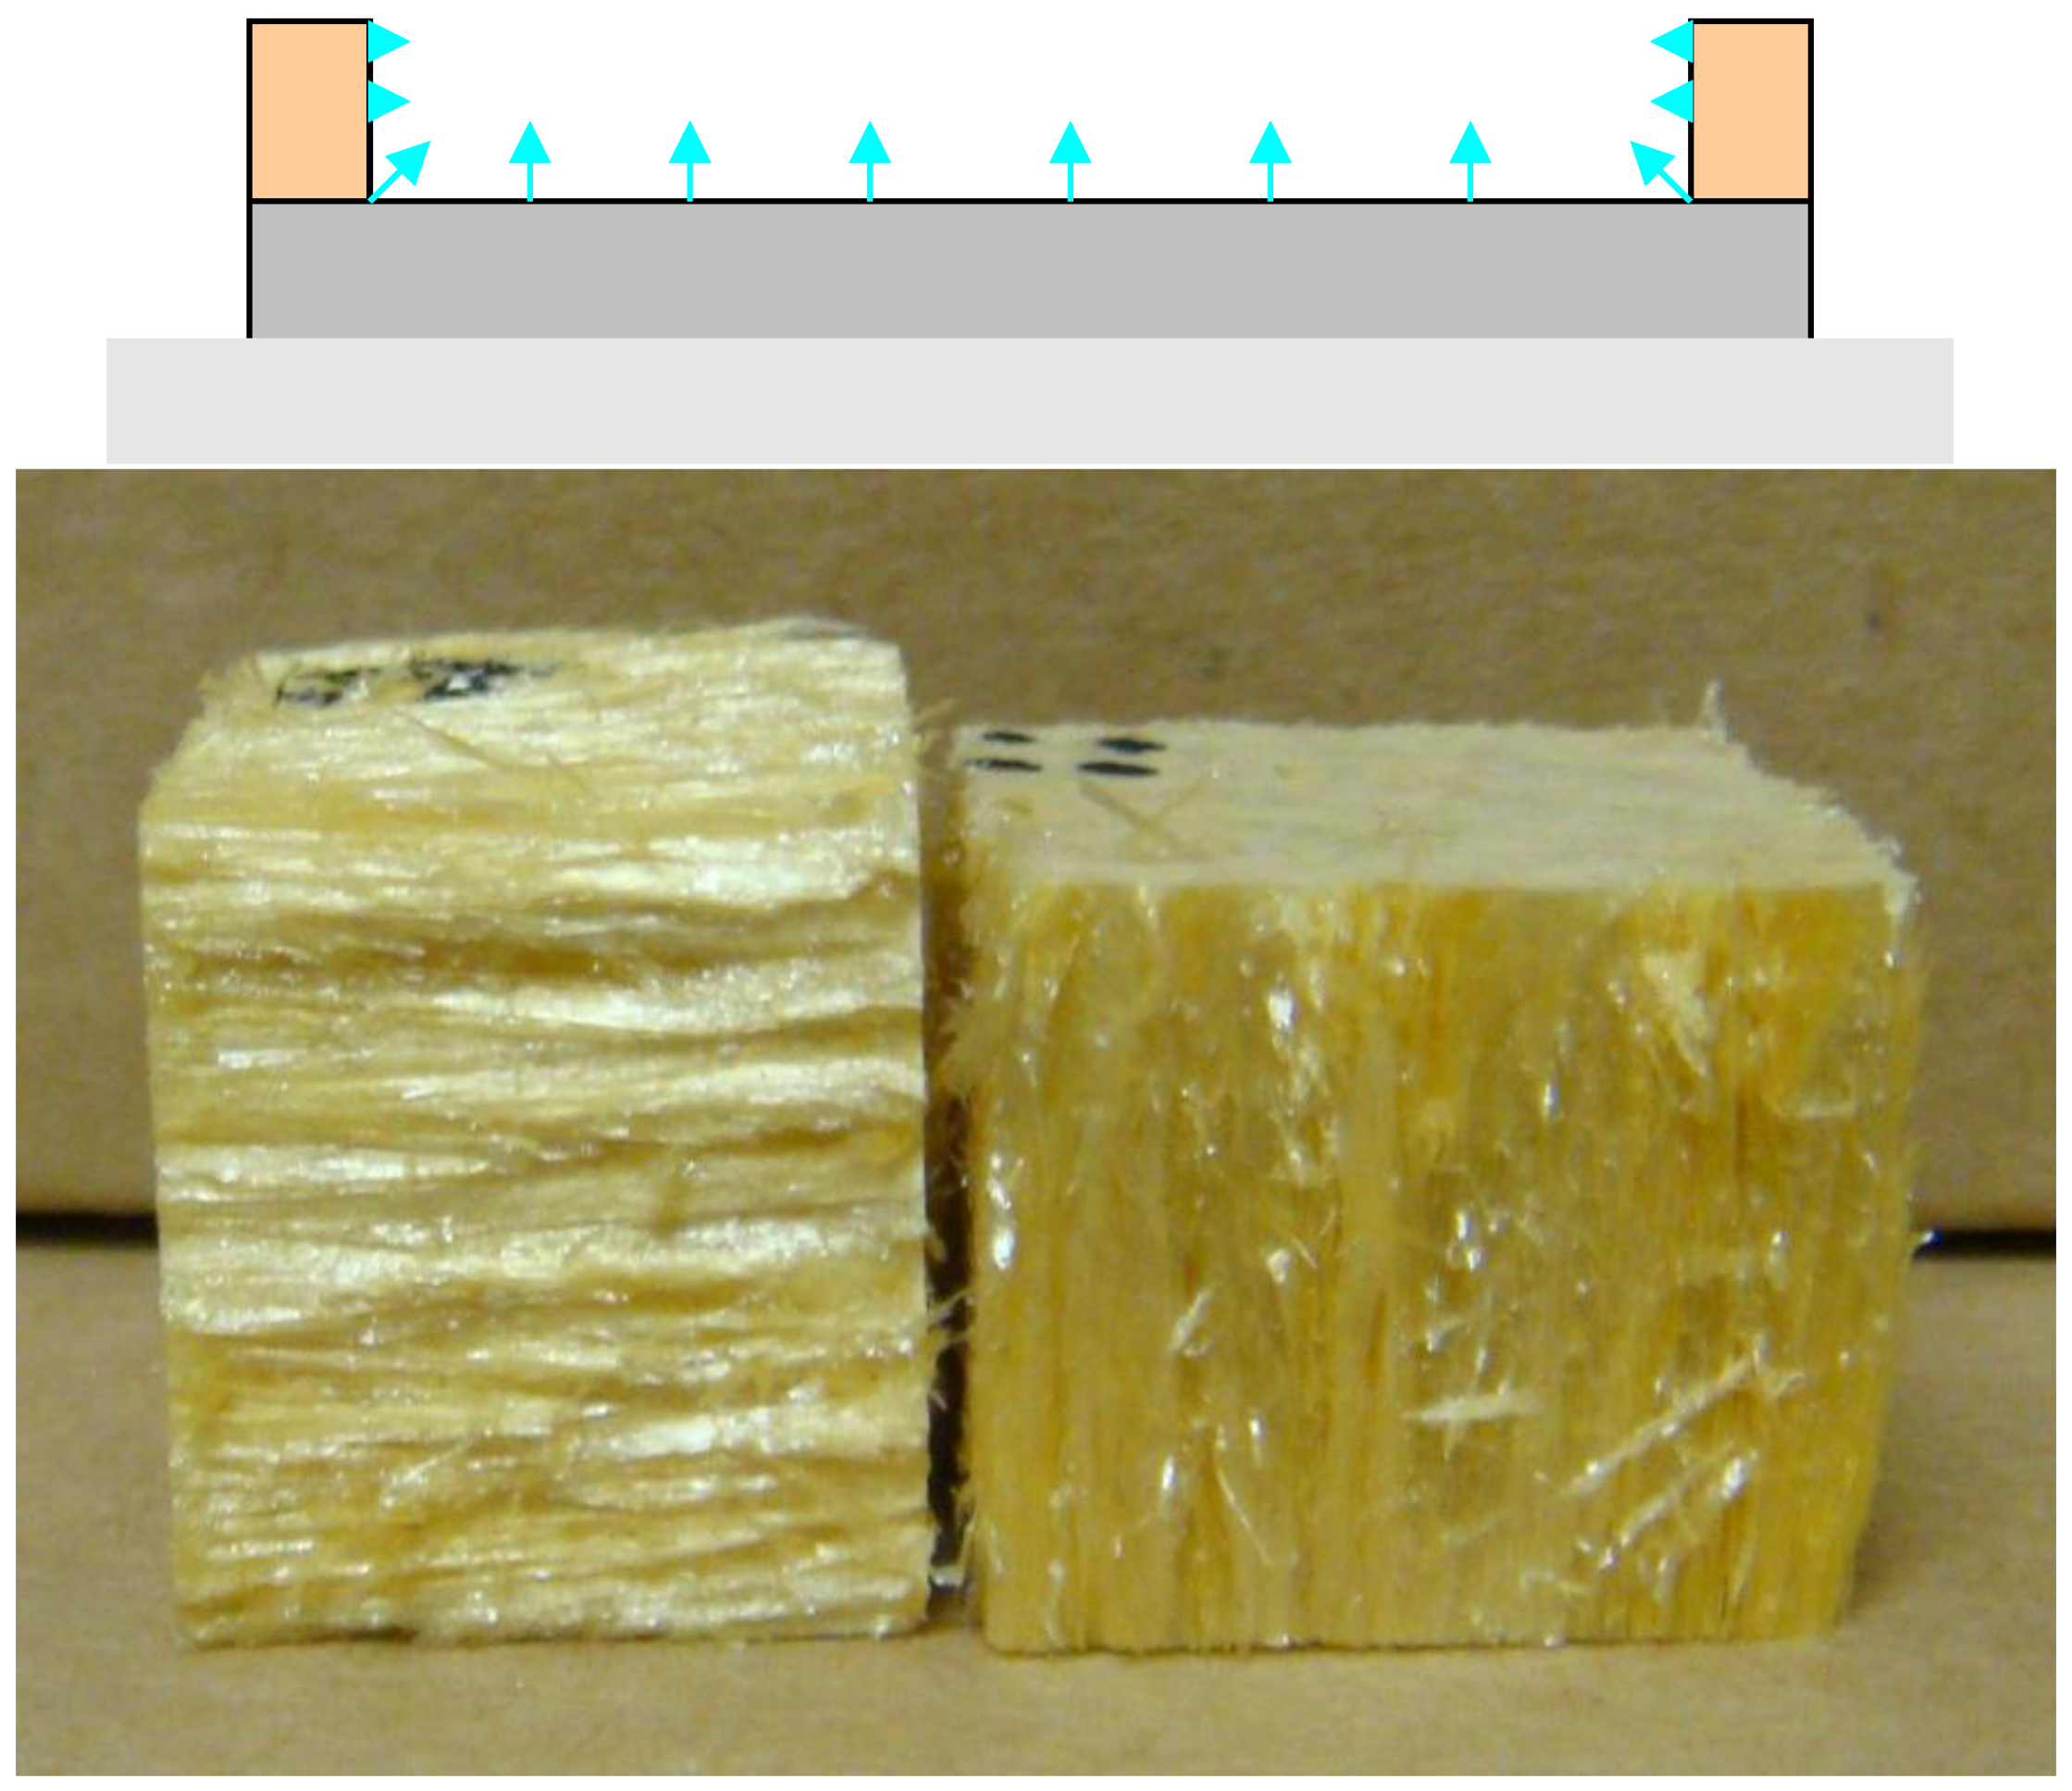 Materials   Free Full-Text   Poly(Amide-imide) Aerogel